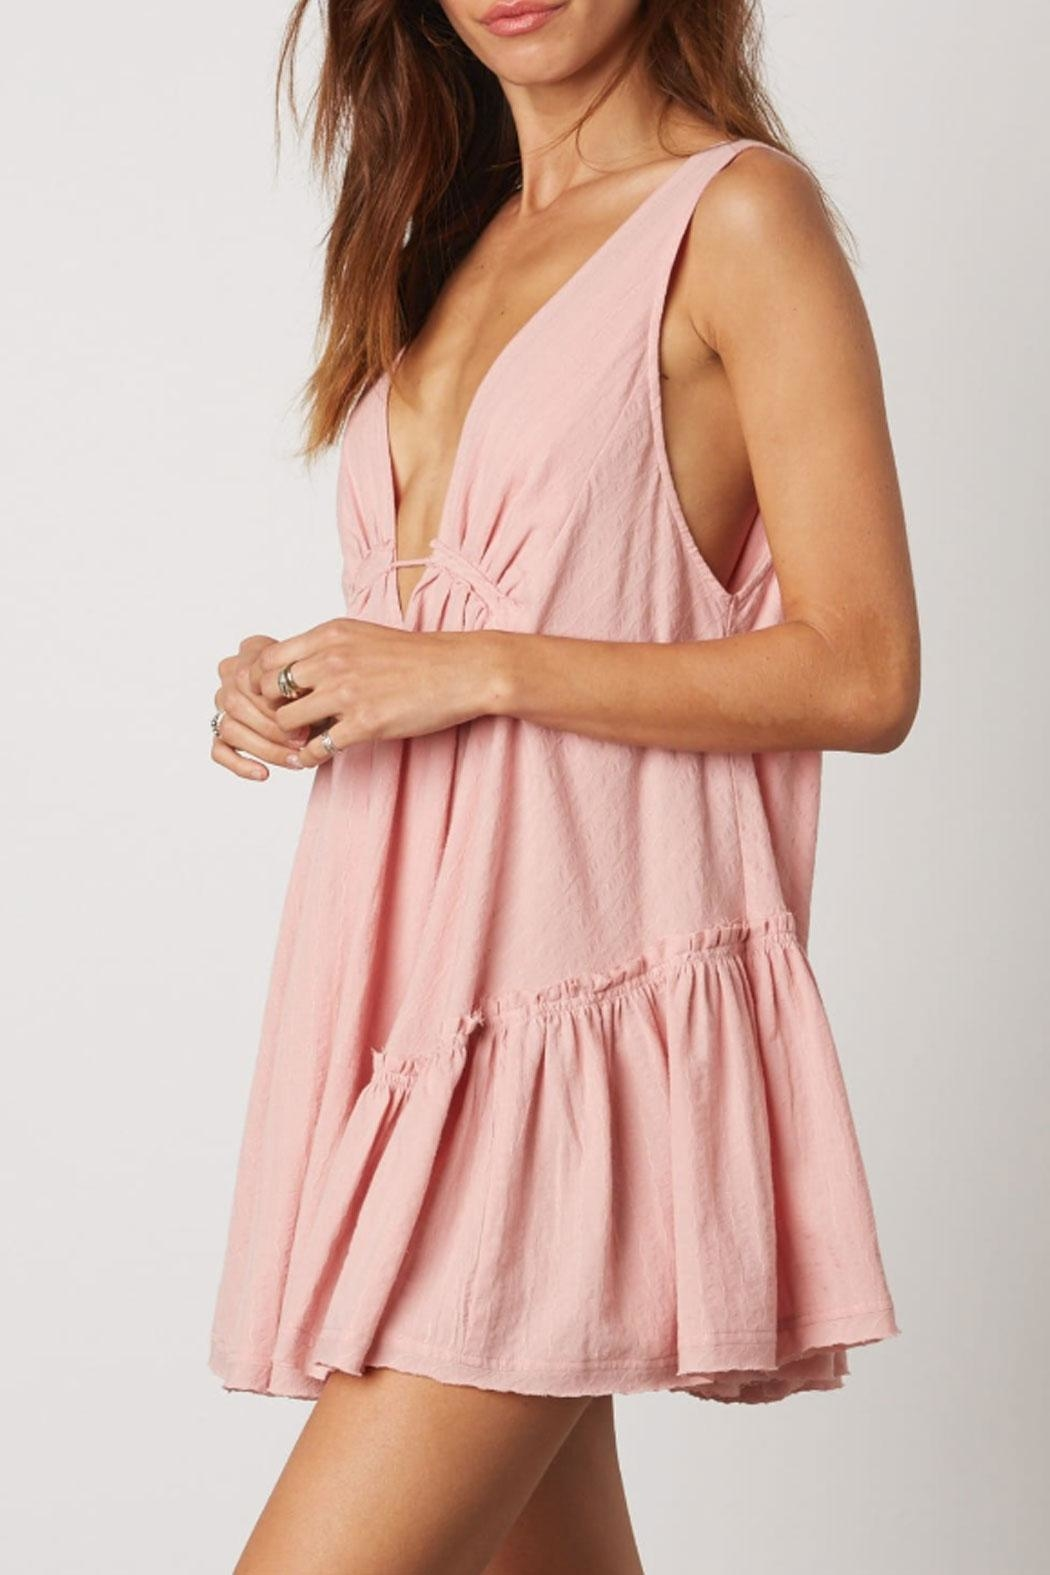 Cotton Candy Deep-V Swing Dress - Main Image